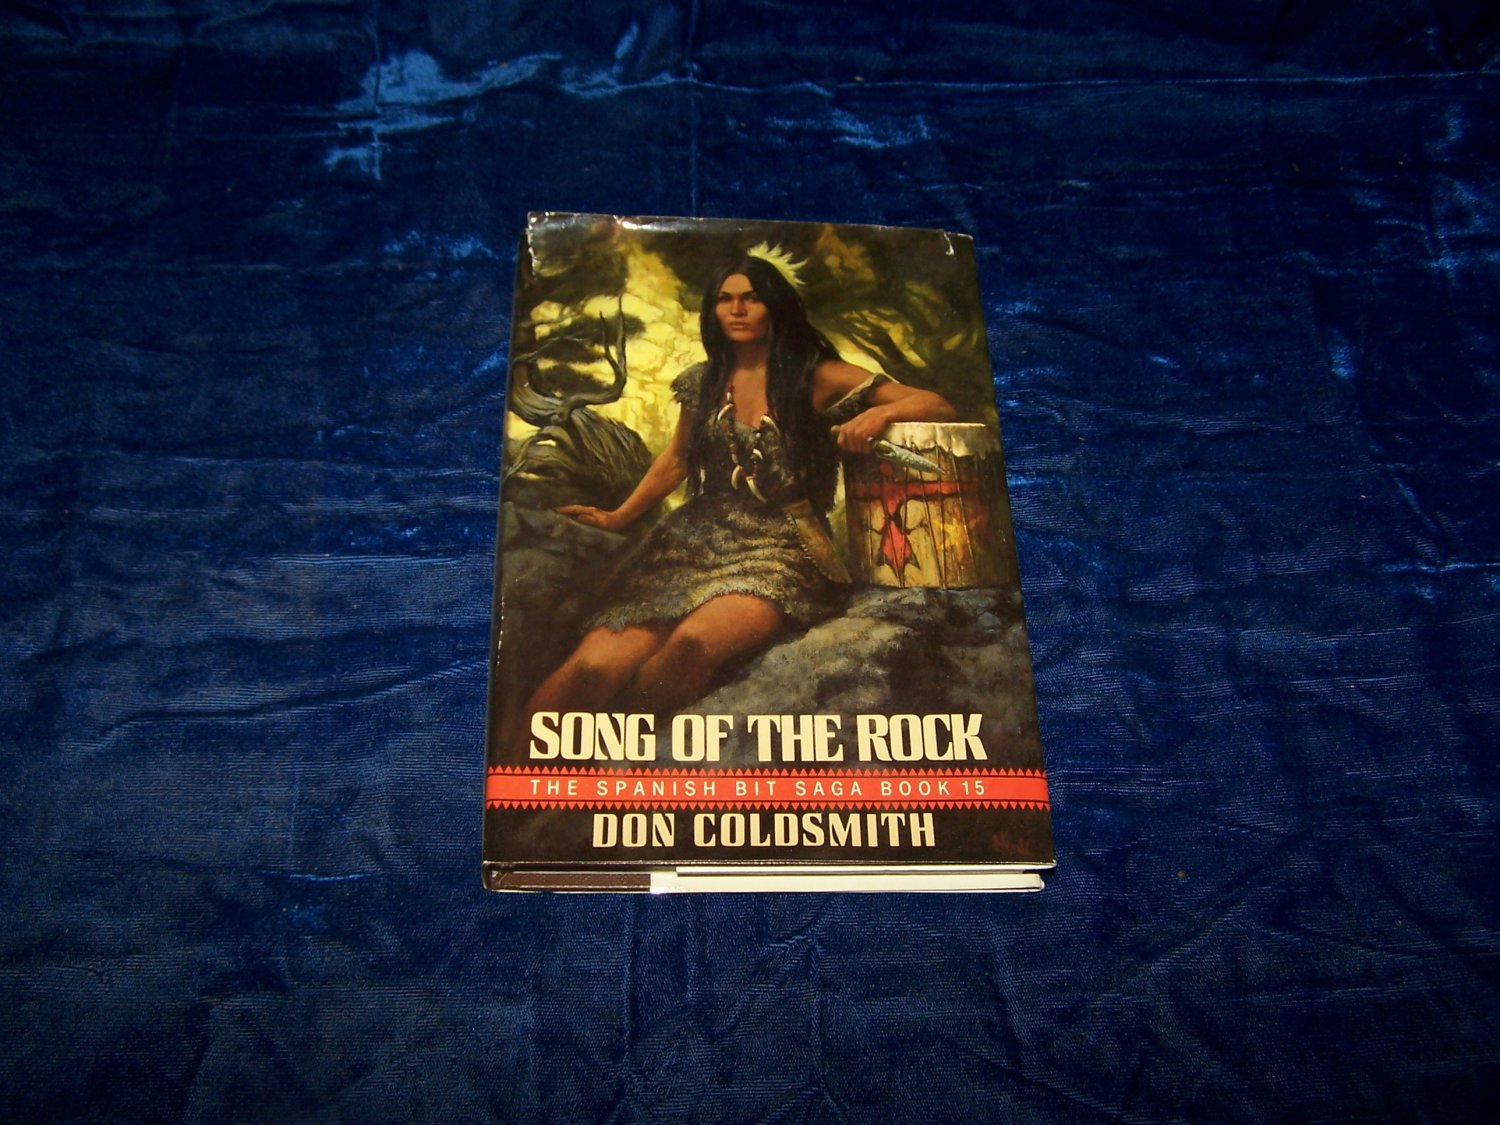 song of the rock hc book Don Coldsmith 1989 first edition